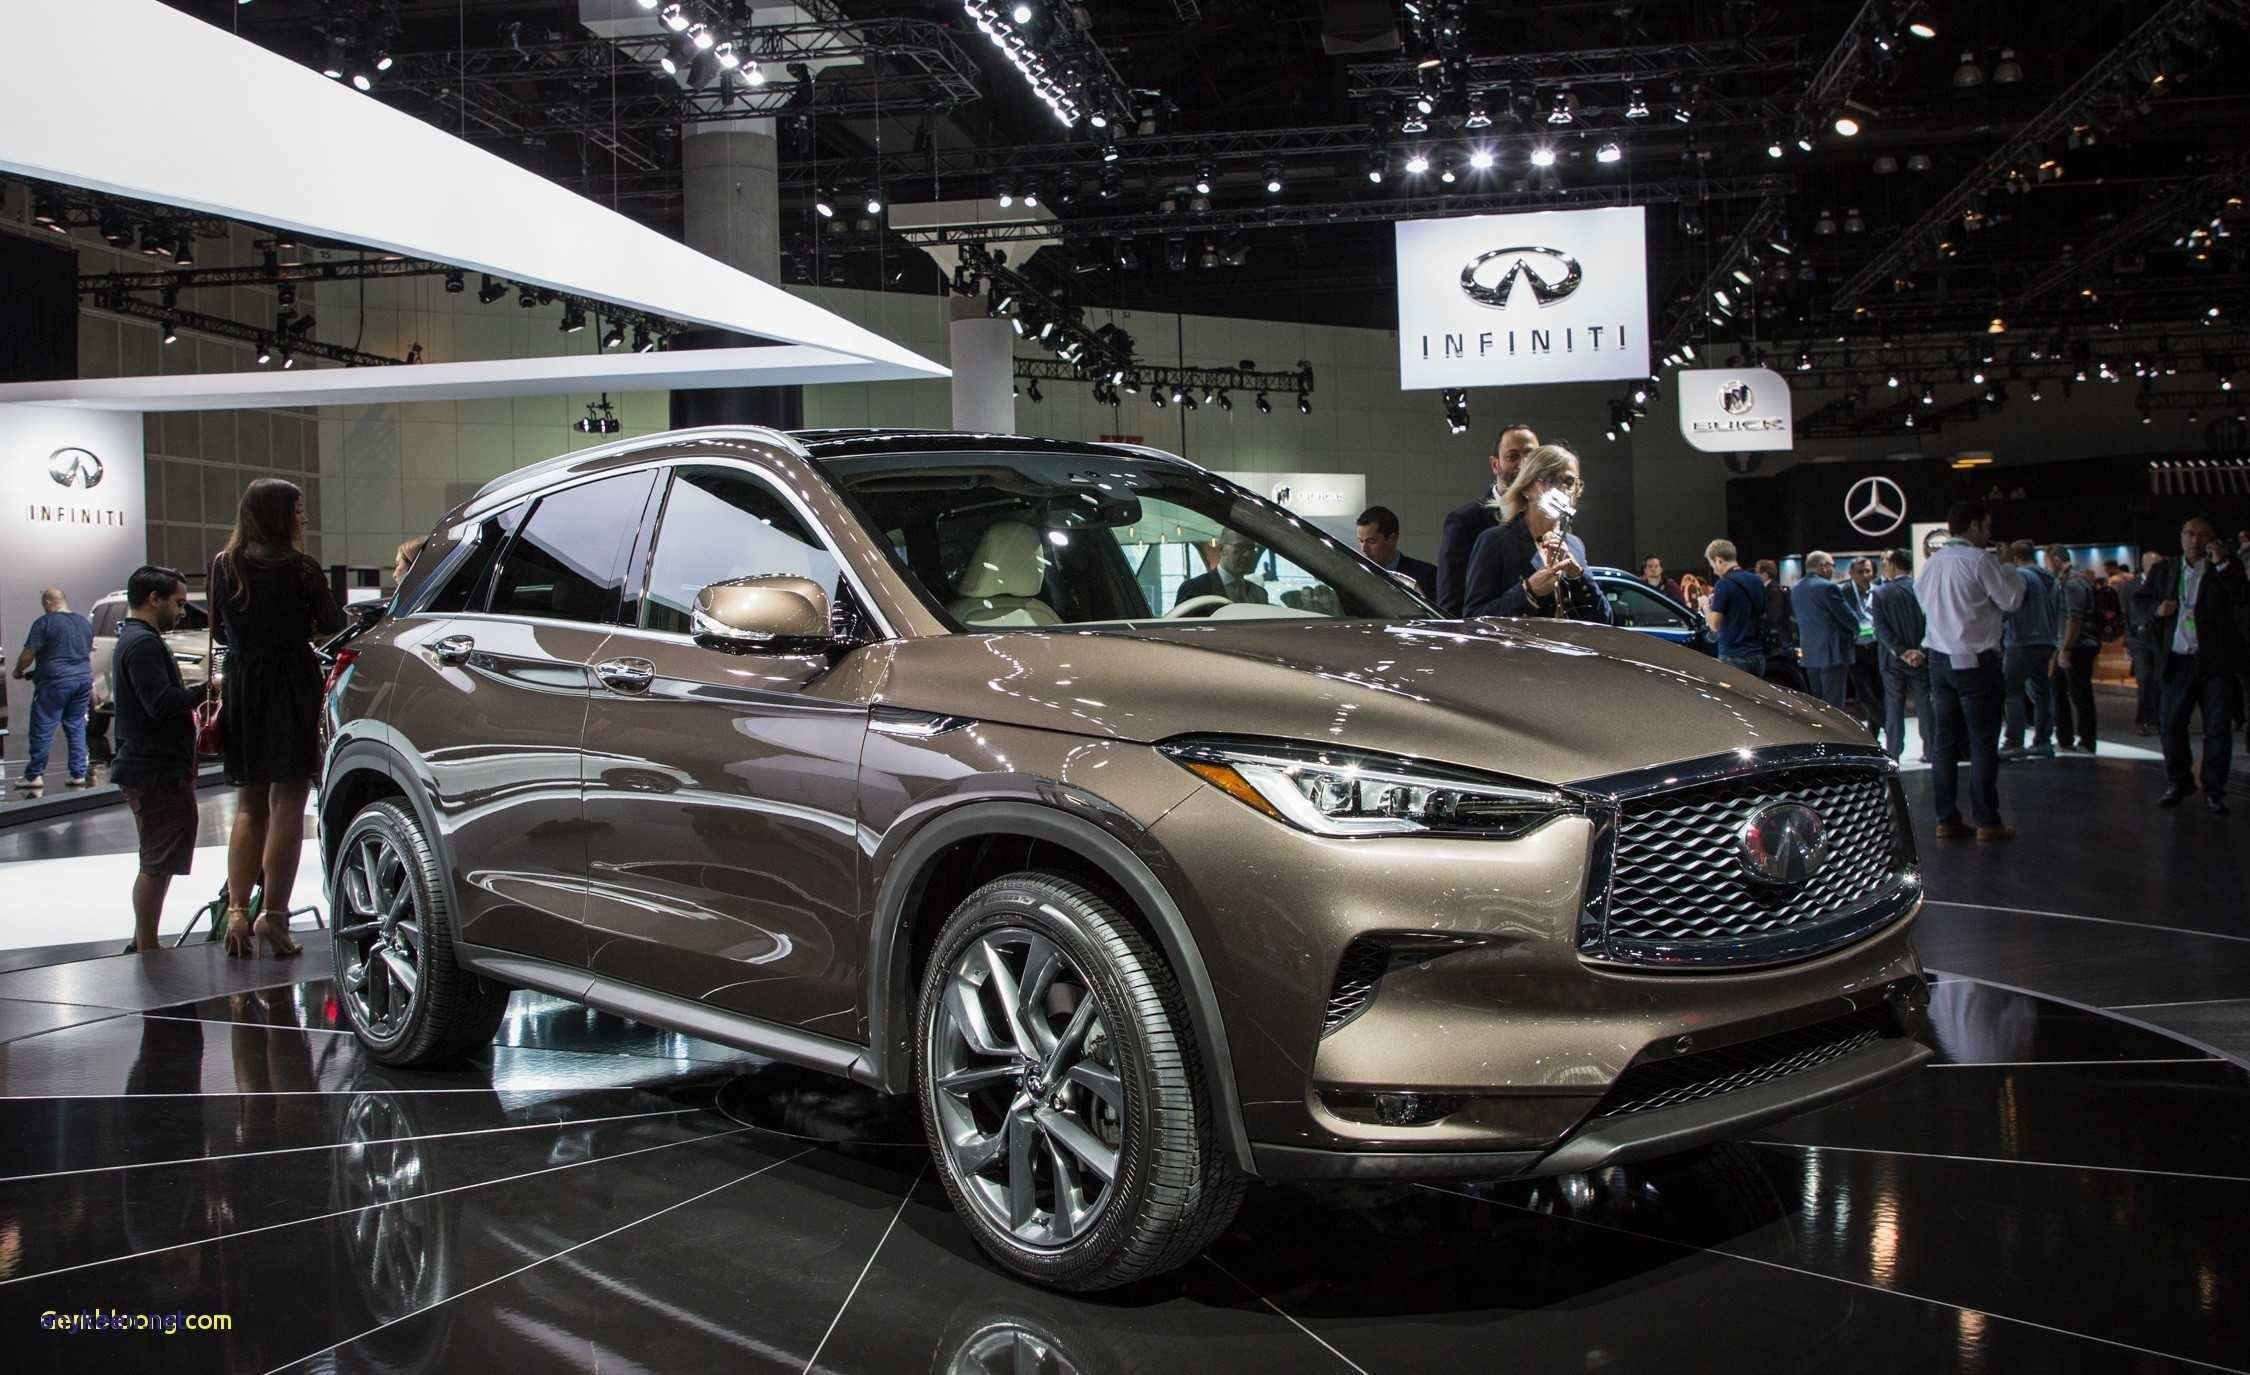 99 Great The Infiniti 2019 Models New Release Images for The Infiniti 2019 Models New Release